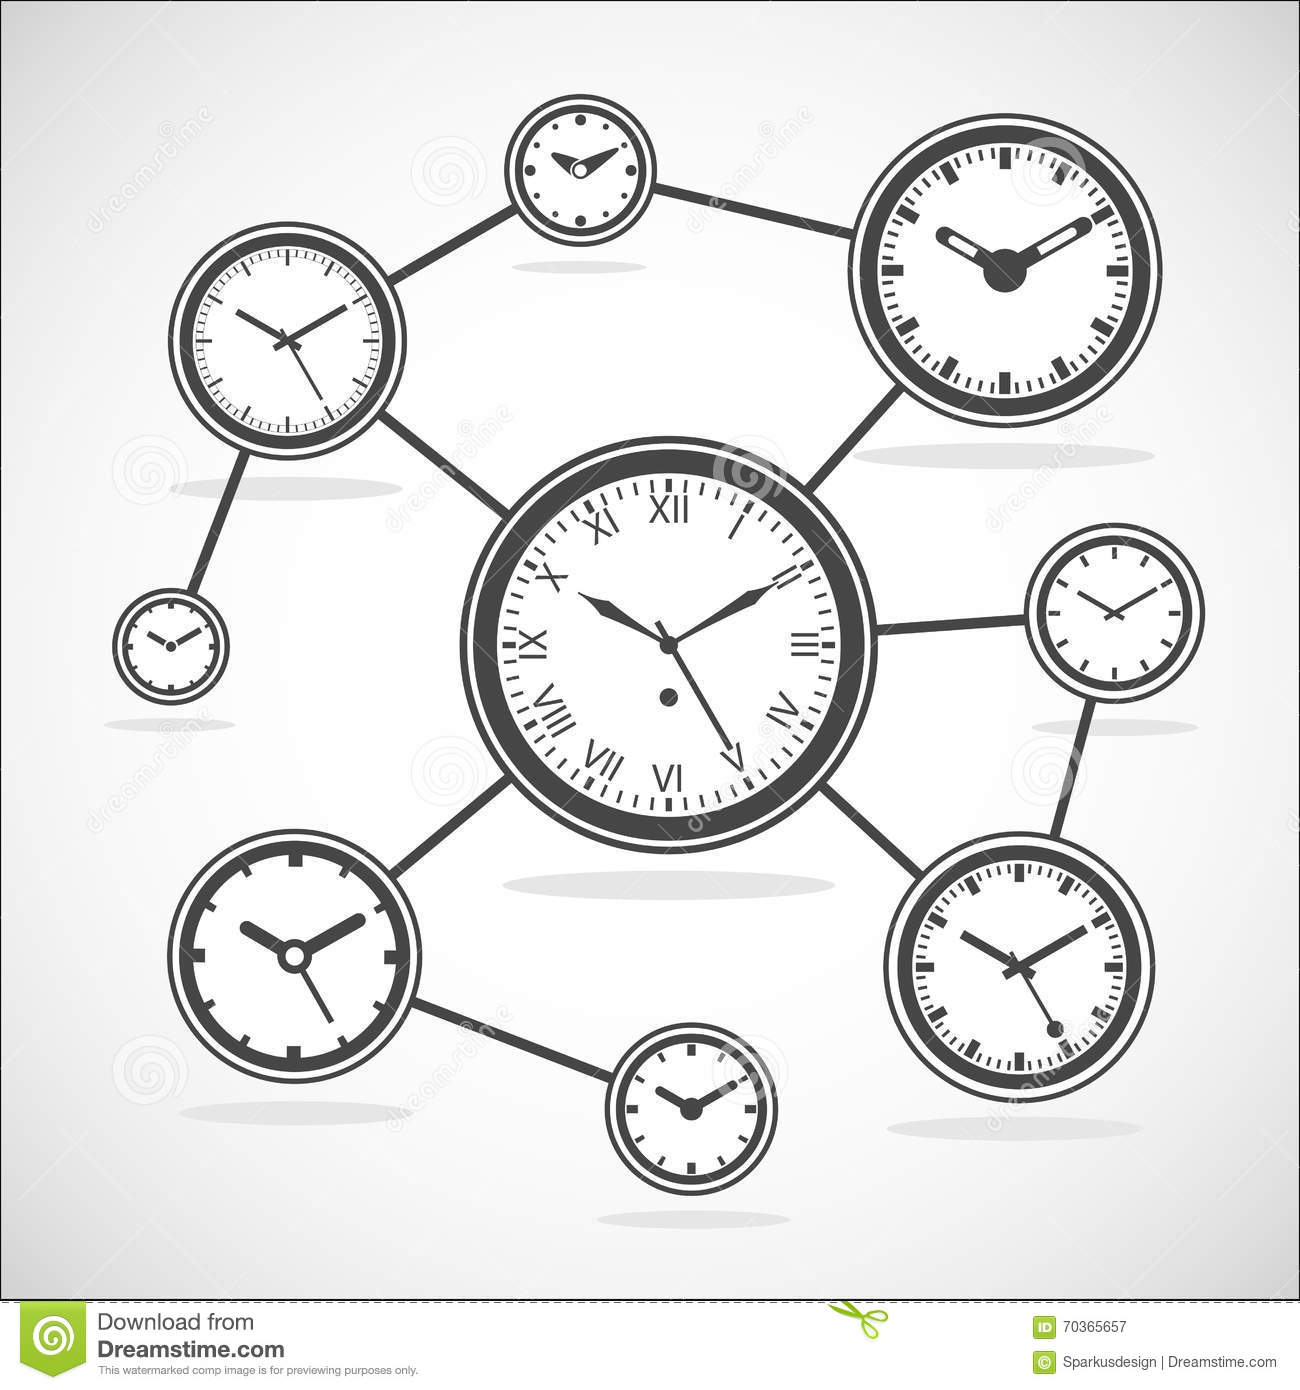 time synchronization diagram - vector illustration stock vector